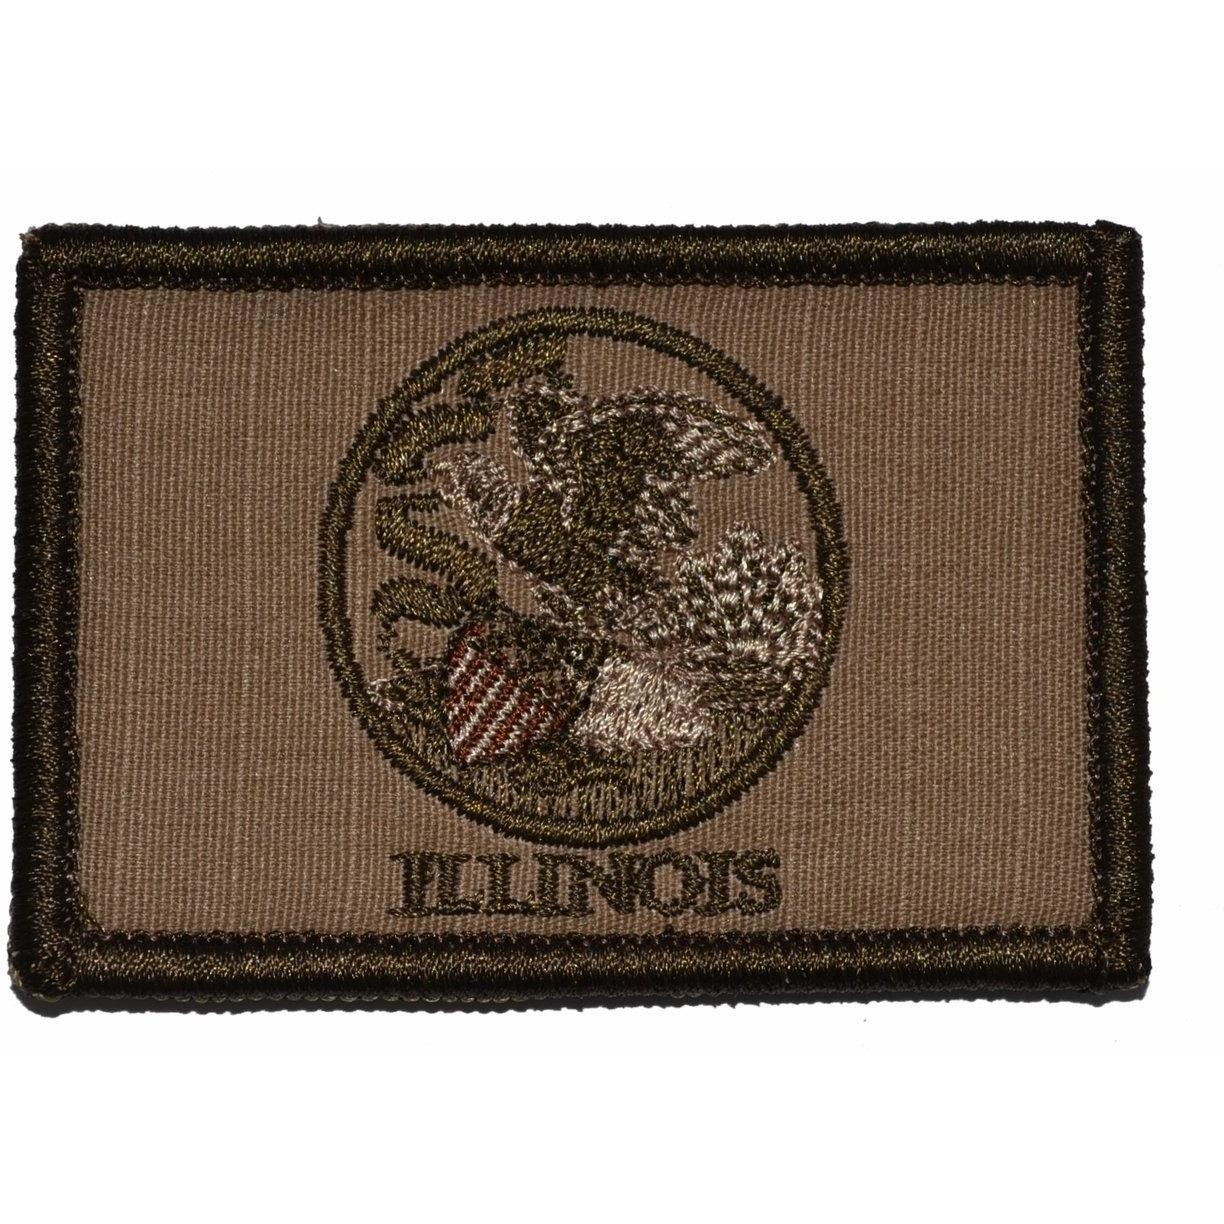 Illinois State Flag - 2x3 Patch